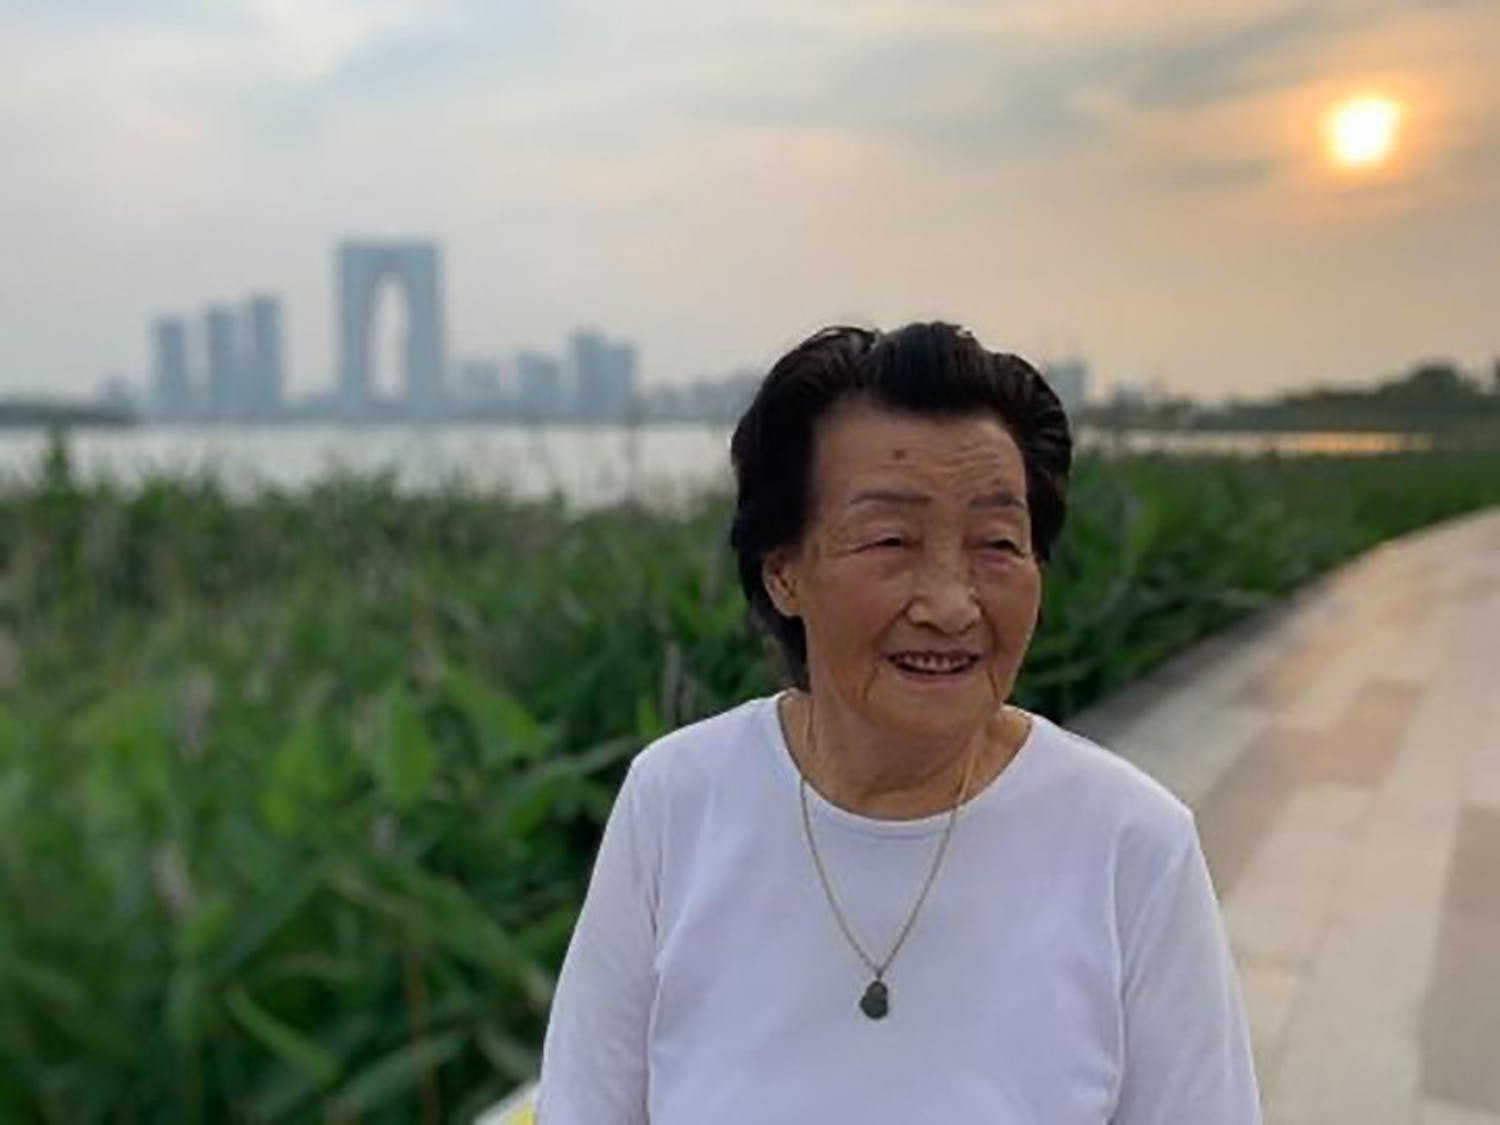 Third-year Honors student Andrew Chen is gathering six to 10 hours of interviews from his grandmother, who is a midwife in rural China. He seeks to write a critical anthropology paper about birth, cultures and practices within China.